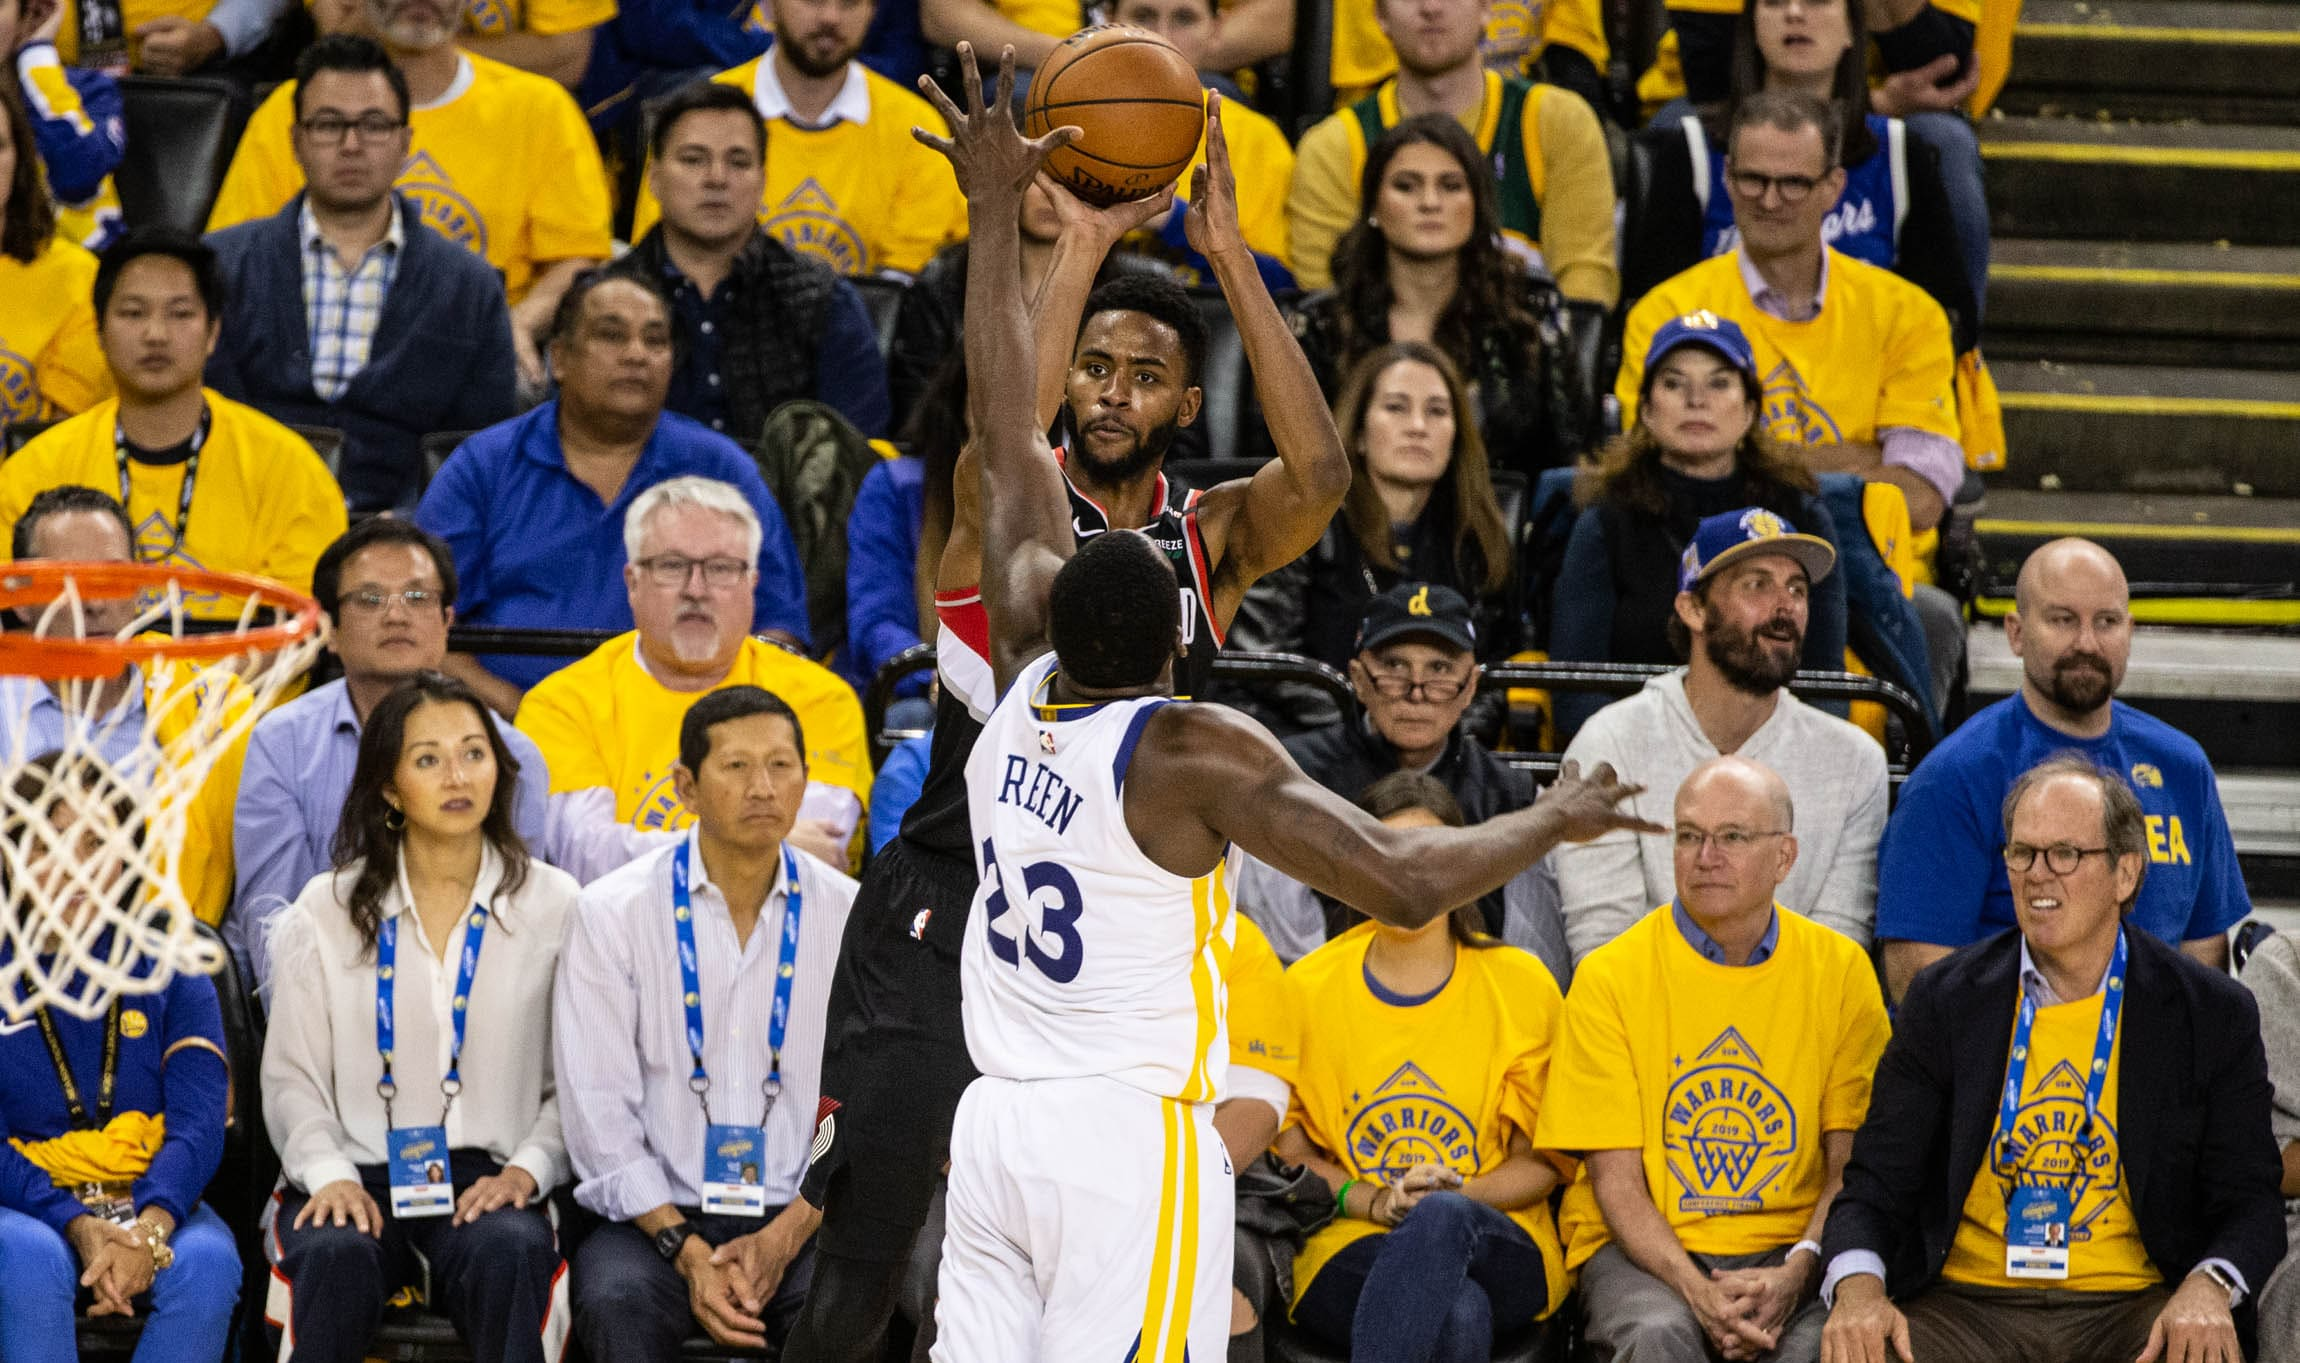 e04495d951db WESTERN CONFERENCE FINALS GAME 2 PREVIEW  (3) Portland Trail Blazers vs.  (1) Golden State Warriors